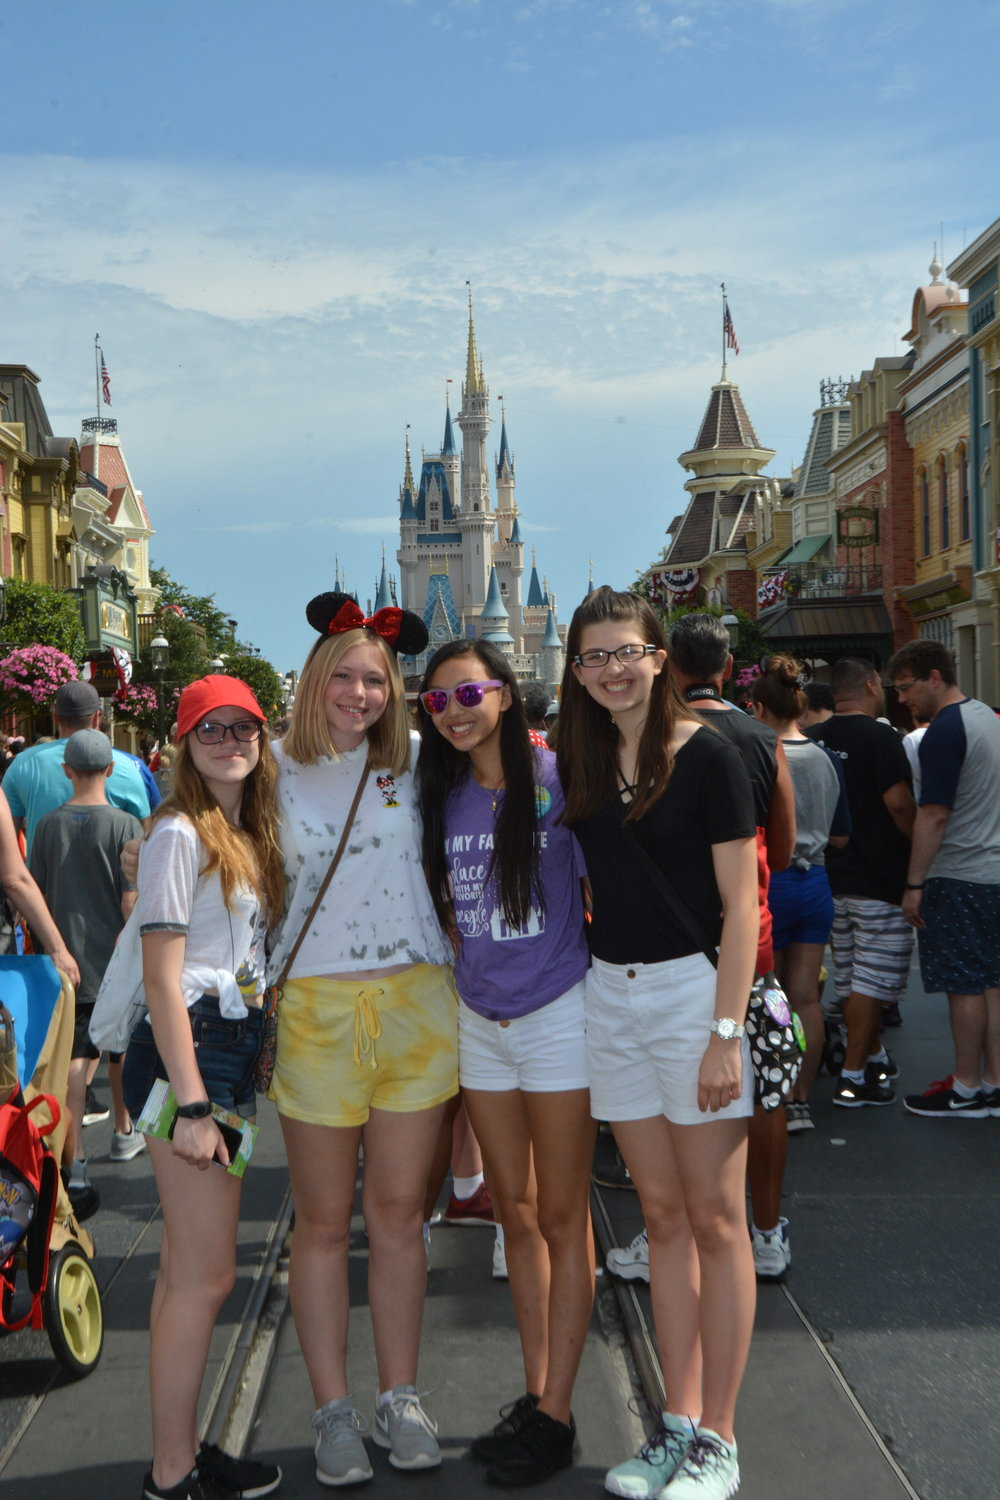 Freshman clarinets Haylie, Hailey, Hannah & Katelyn on Main Street USA